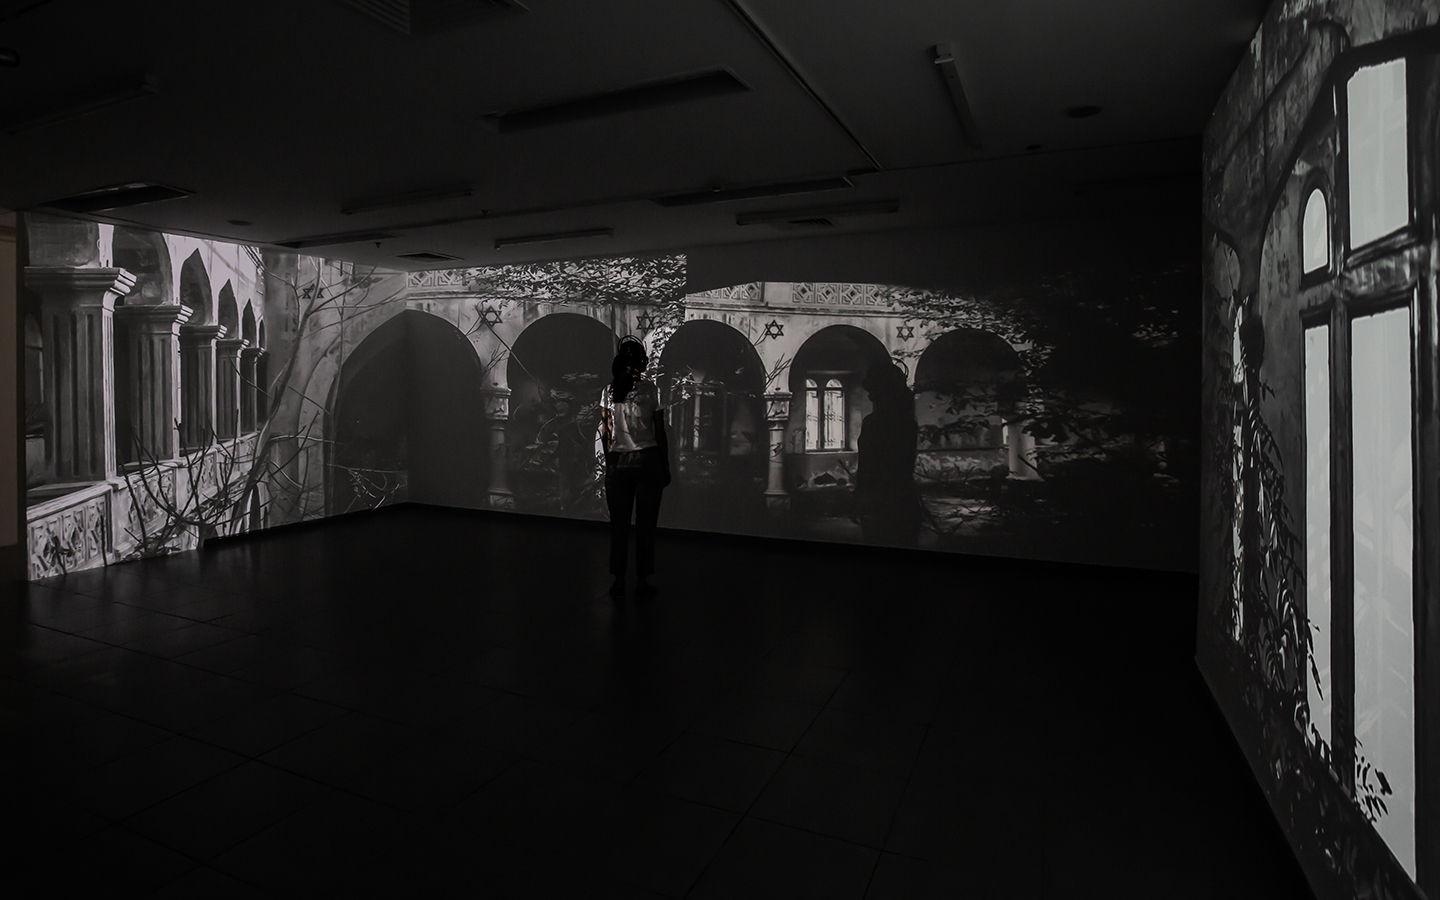 Dor Zlekha Levy, 'Magen', Multichannel projection installation,  2016, dimensions variable